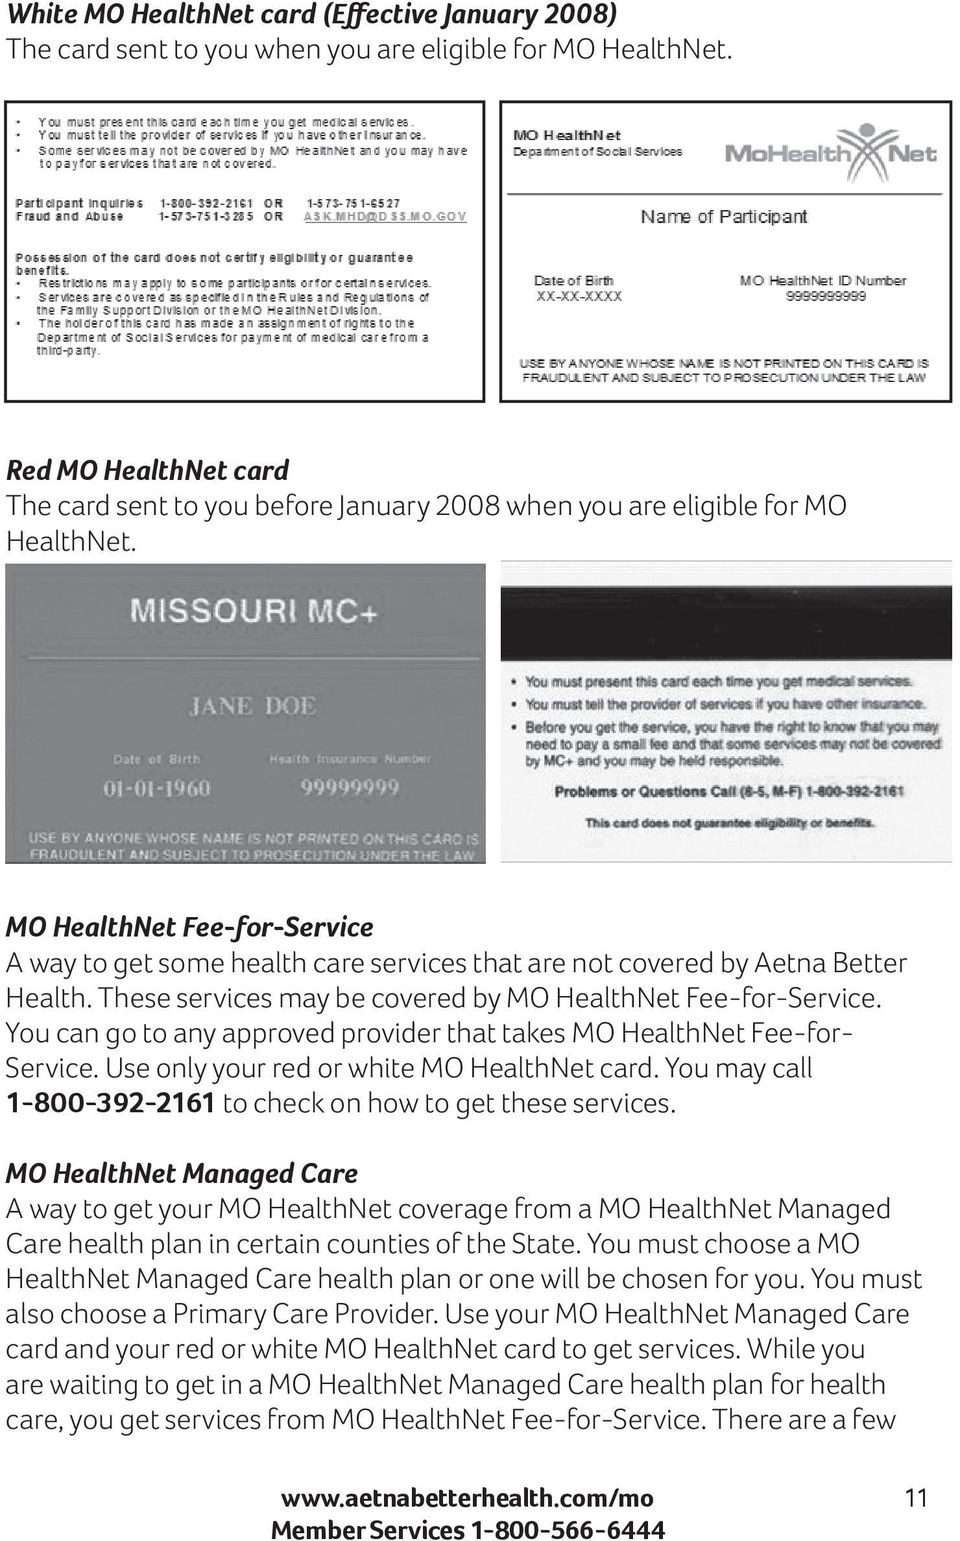 Aetna Better Health Of Missouri Learn About Your Health Care